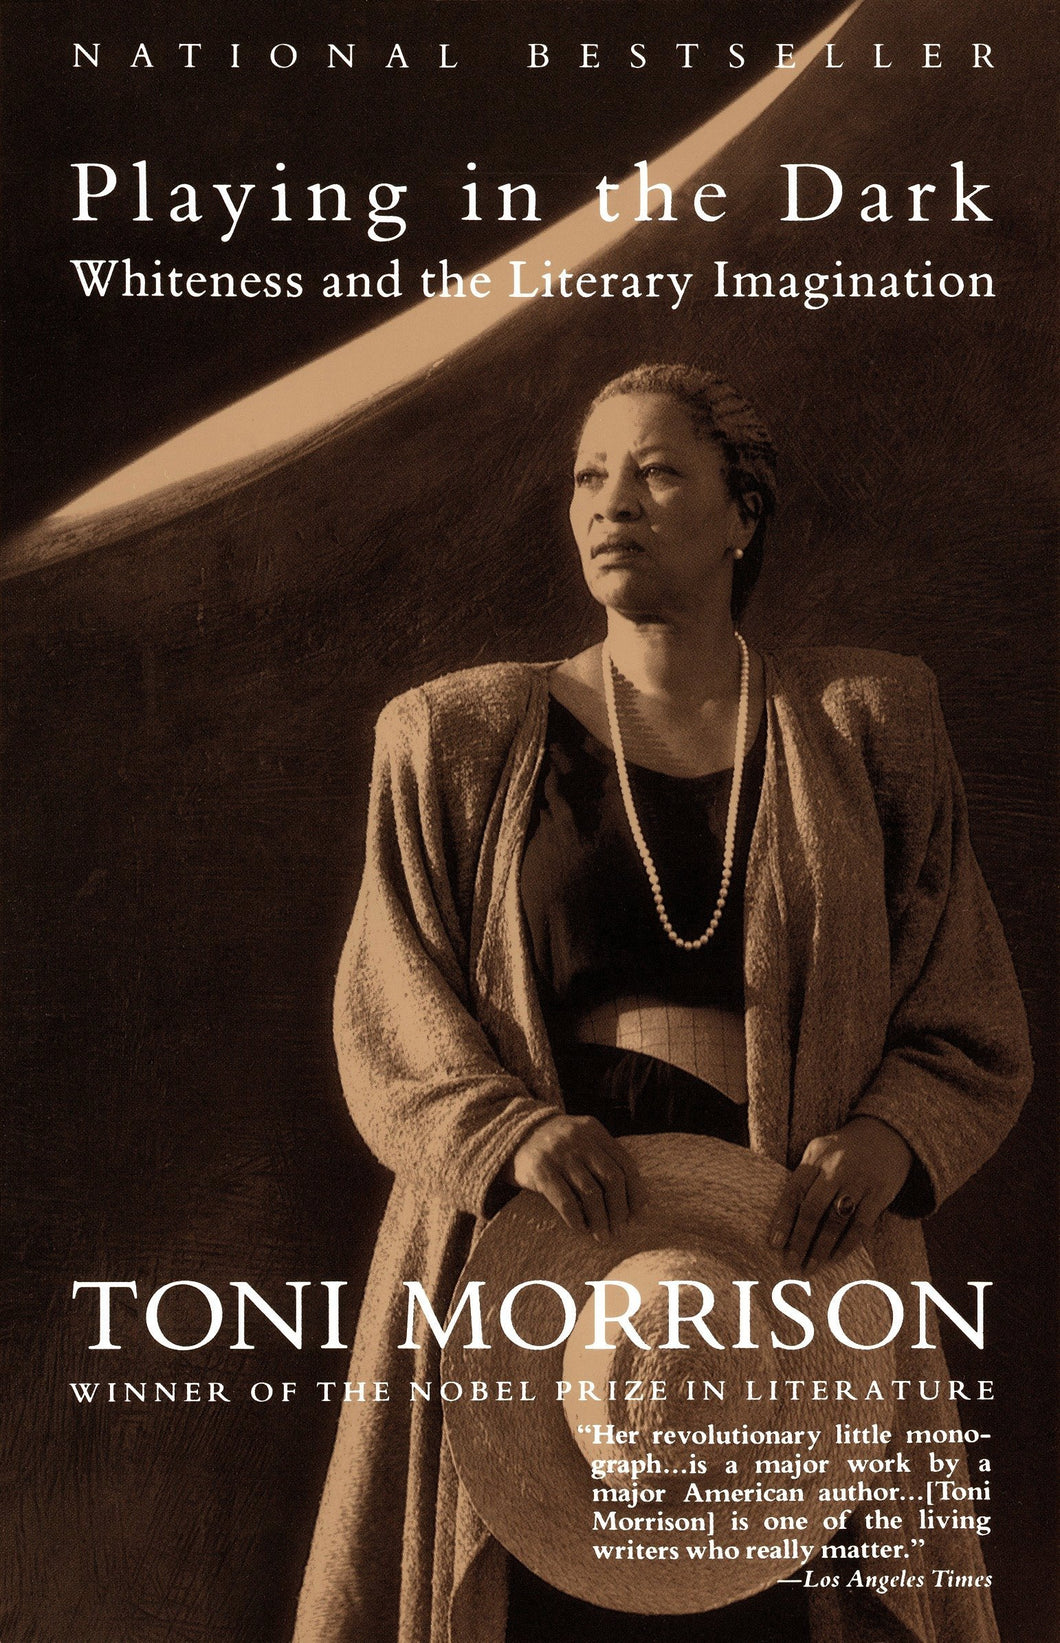 Playing in the Dark: Whiteness and the Literary Imagination by Toni Morrison